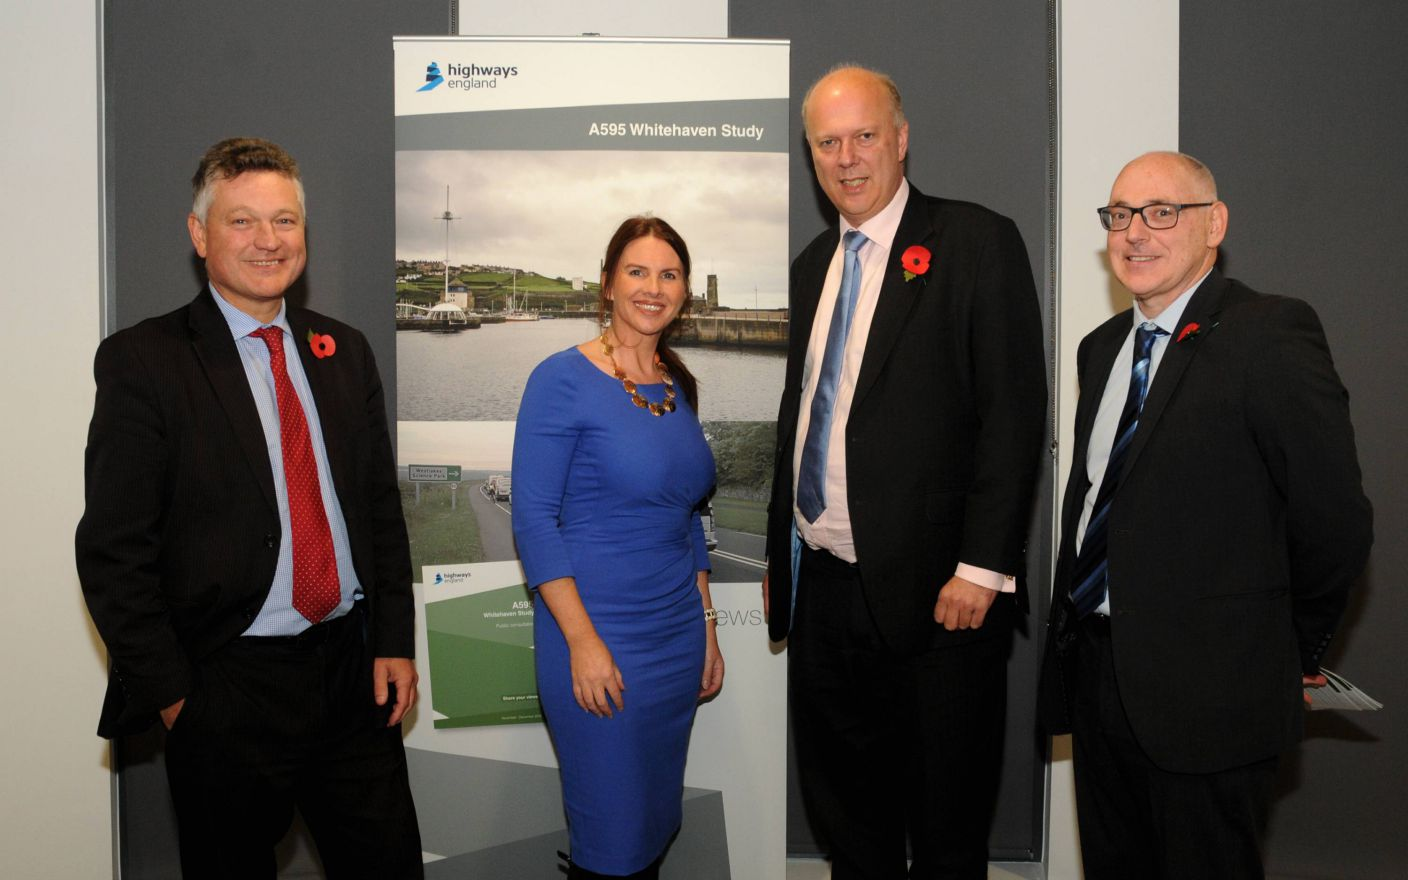 Copeland mayor Mike Starkie, MP Trudy Harrison, Chris Grayling and David Haimes, from Highways England